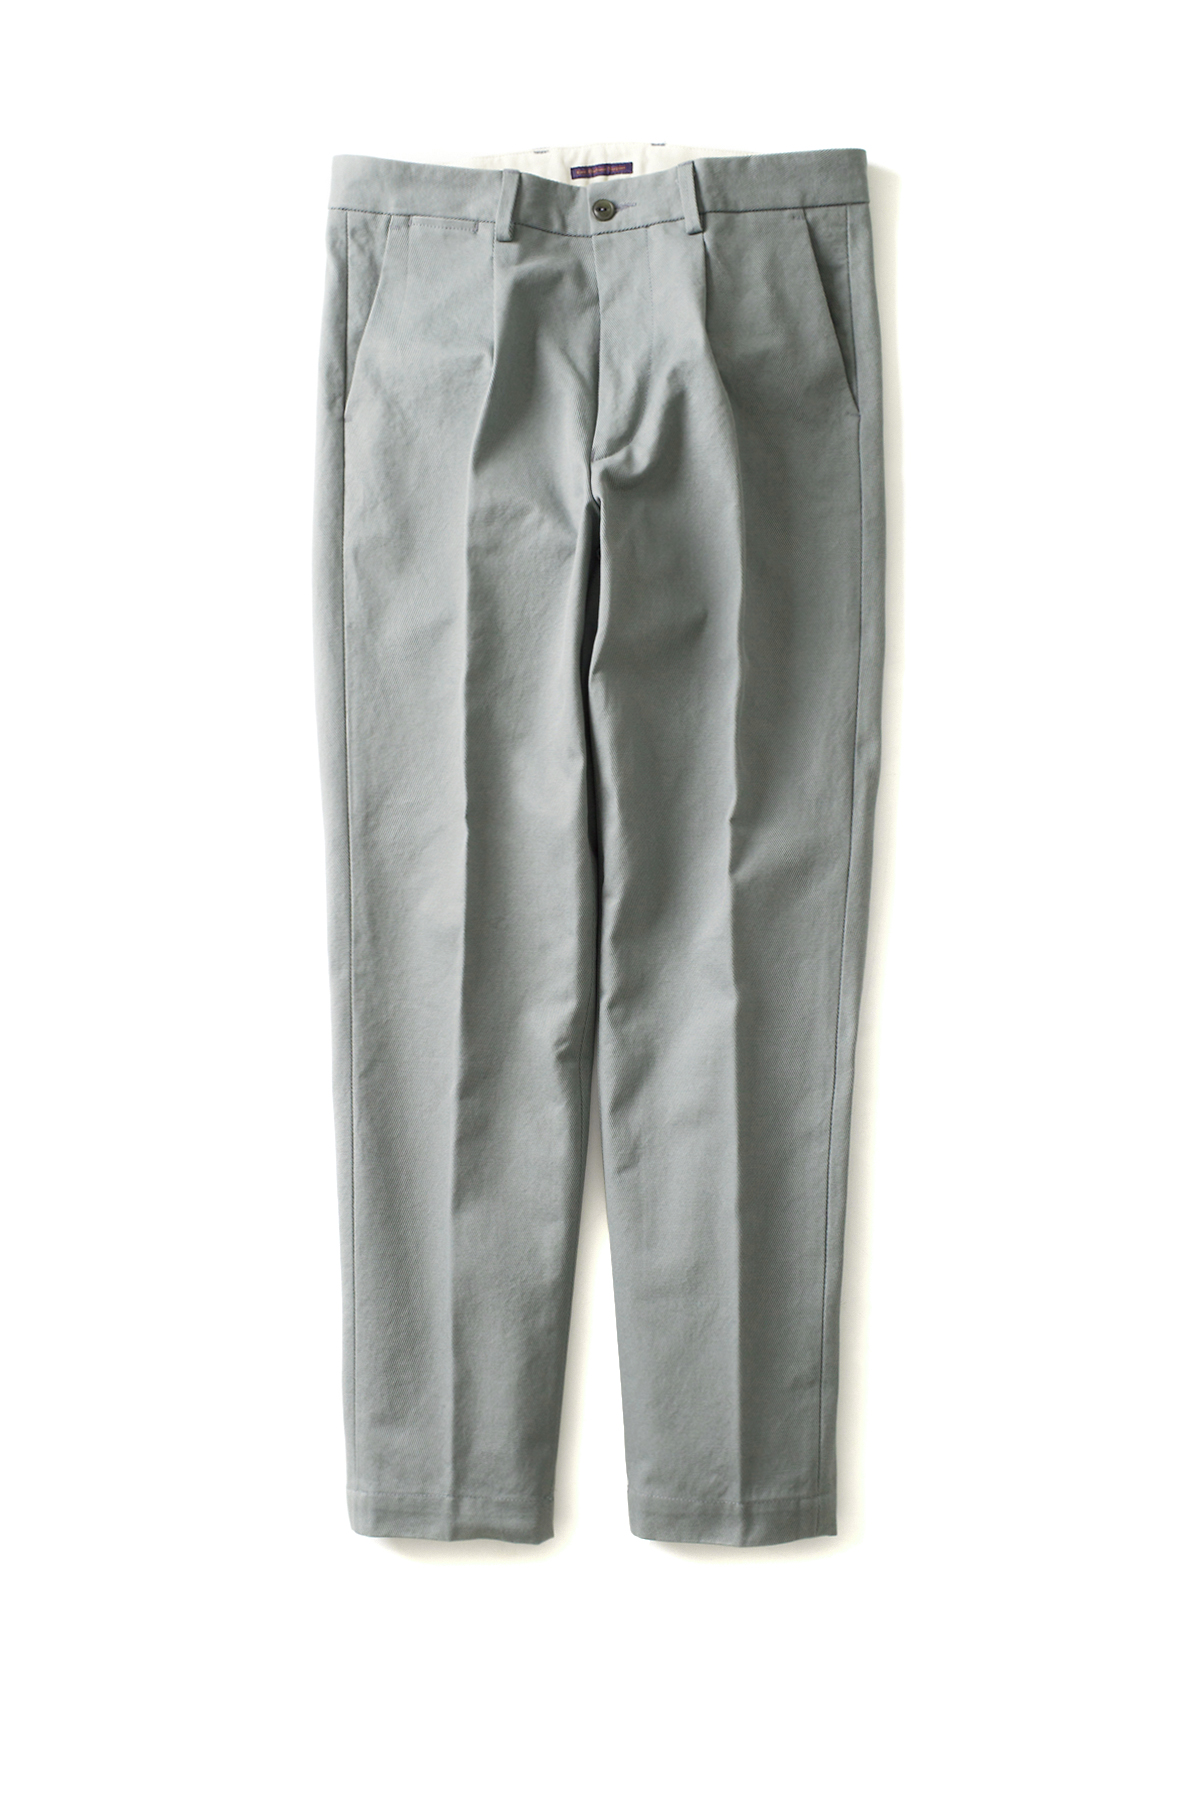 East Harbour Surplus : Bryan14 Pants (Off Grey)